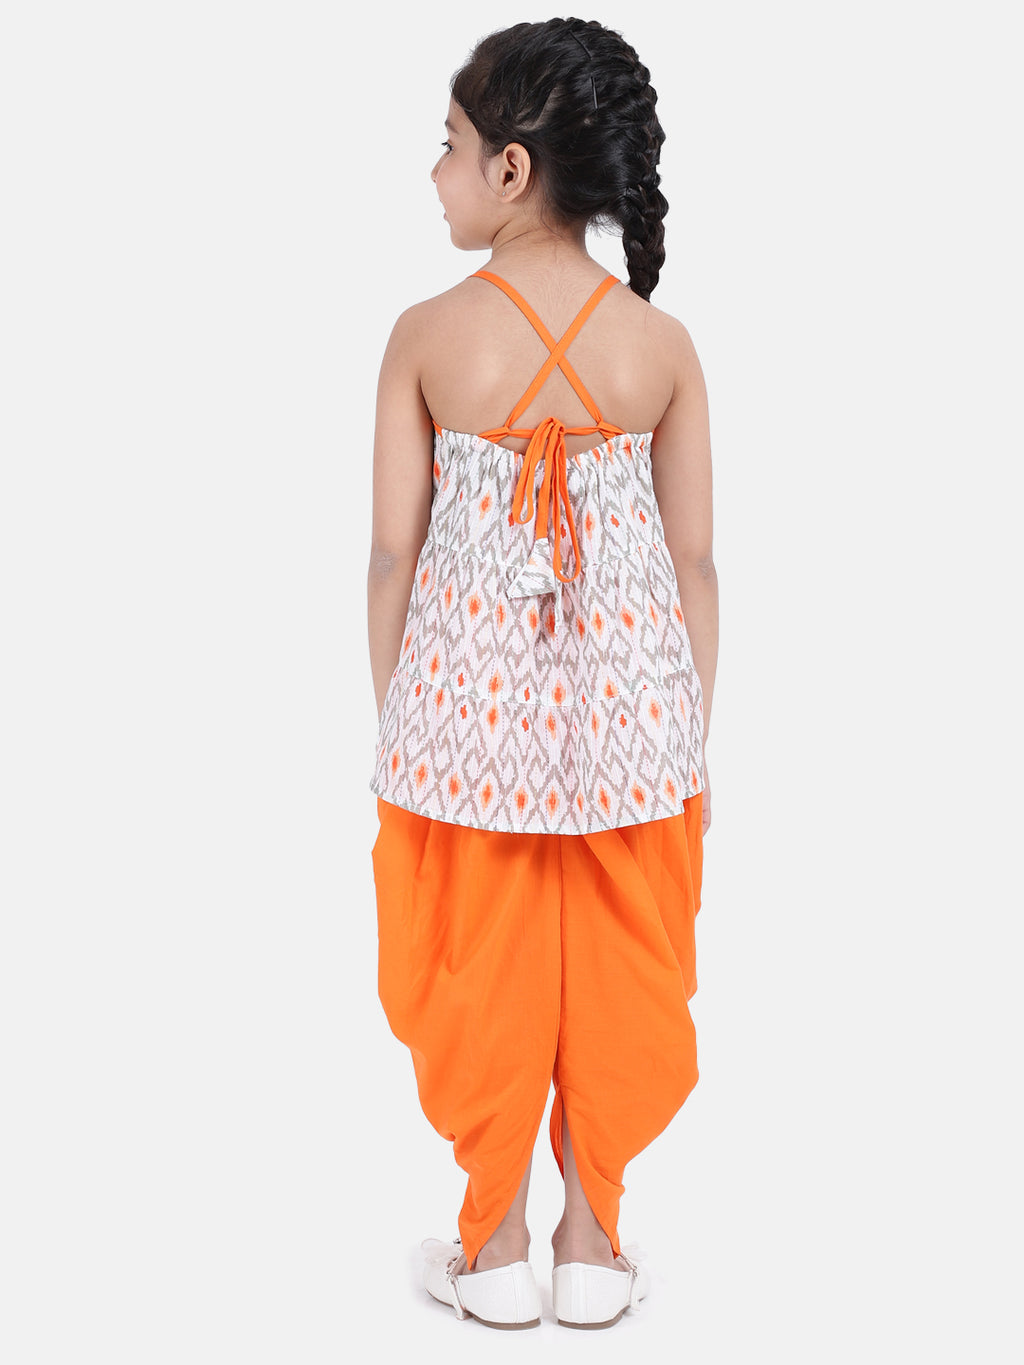 Cambric Cotton Halter Neck Top Dhoti For Girls-Orange